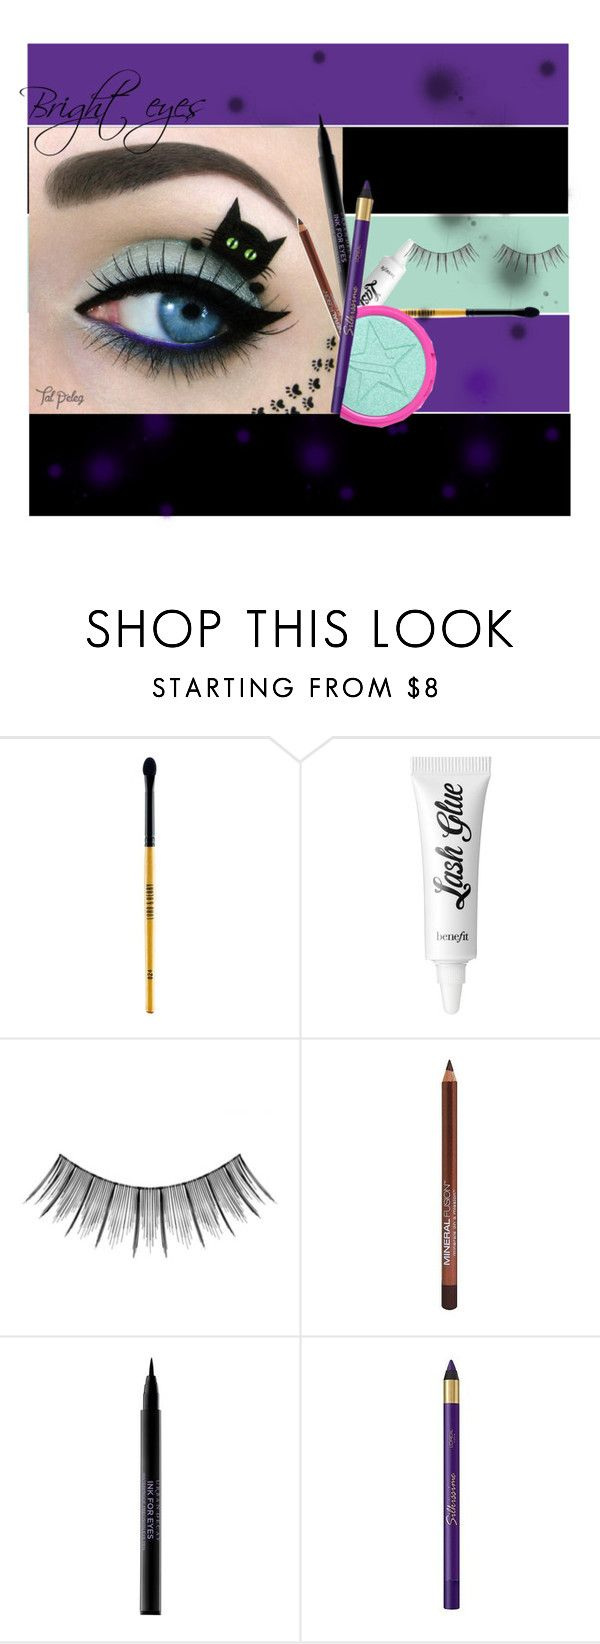 Bright eyes by screaming-soul on Polyvore featuring beauty, L'Oréal Paris, Urban Decay, Benefit, Mineral Fusion, Lord & Berry, Japonesque and brighteyes